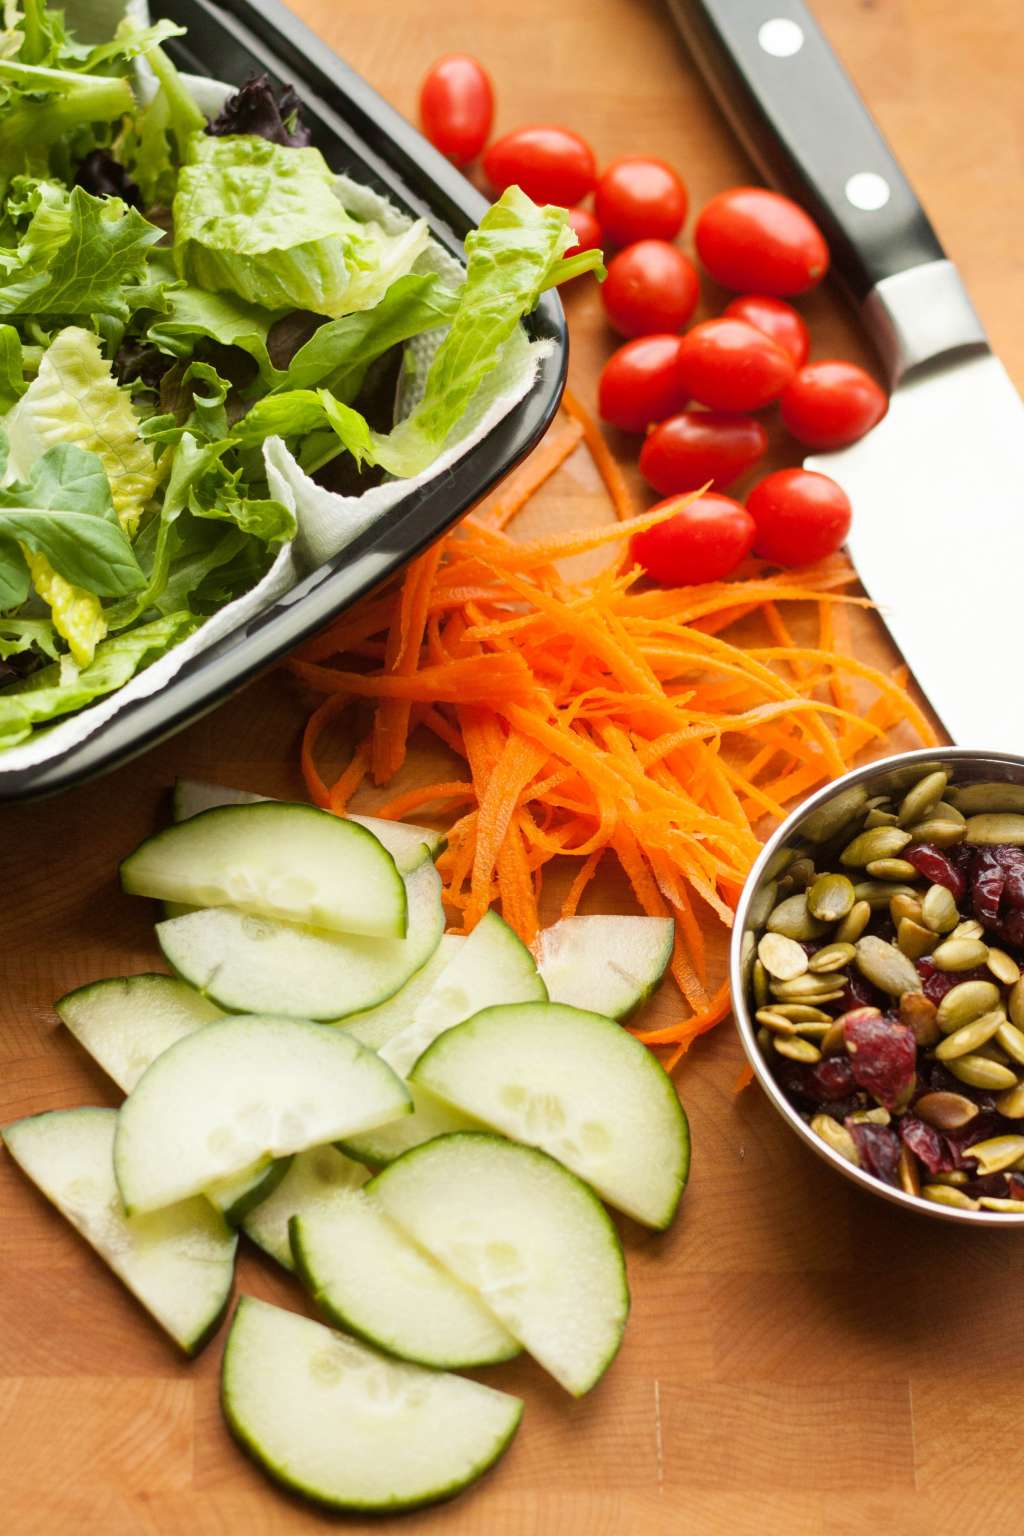 5 Tips for Making a Week's Worth of Salads on Sunday